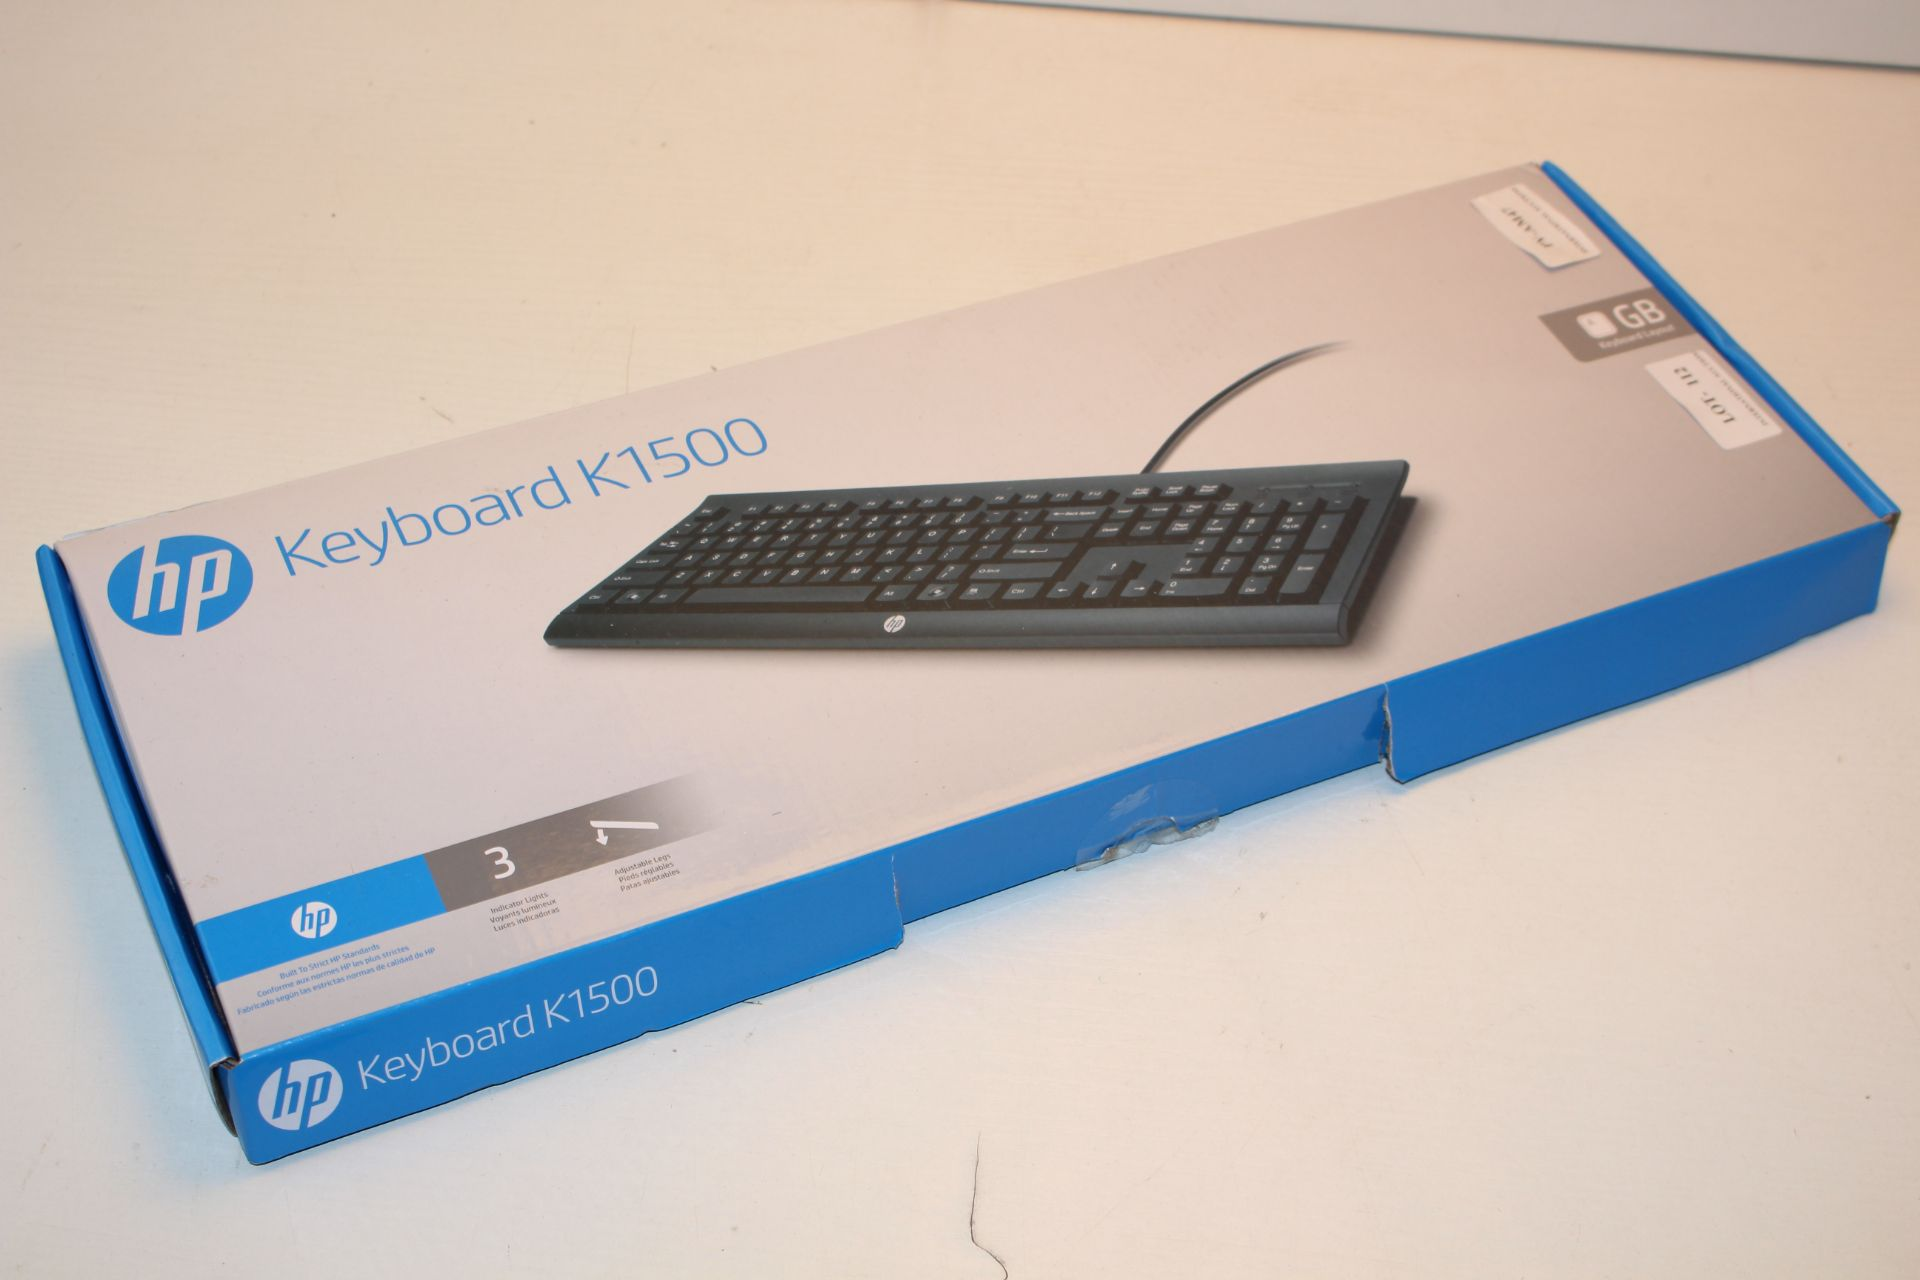 BOXED HP KEYBOARD K1500 GB KEYBOARD LAYOUT Condition ReportAppraisal Available on Request- All Items